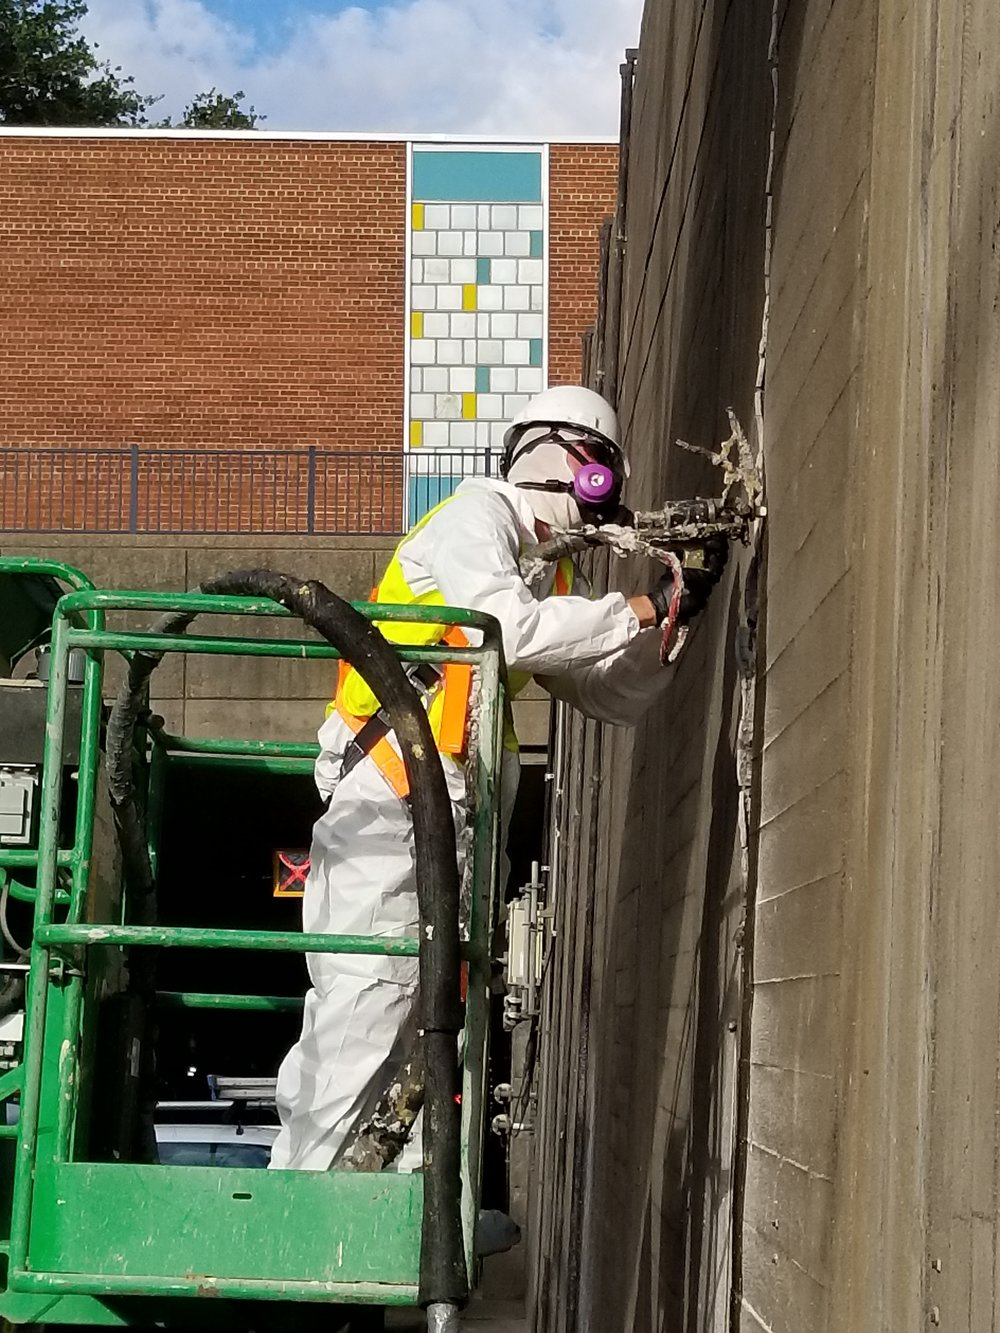 Midtown_Tunnel_Breach_Repairs_Portsmouth_VA